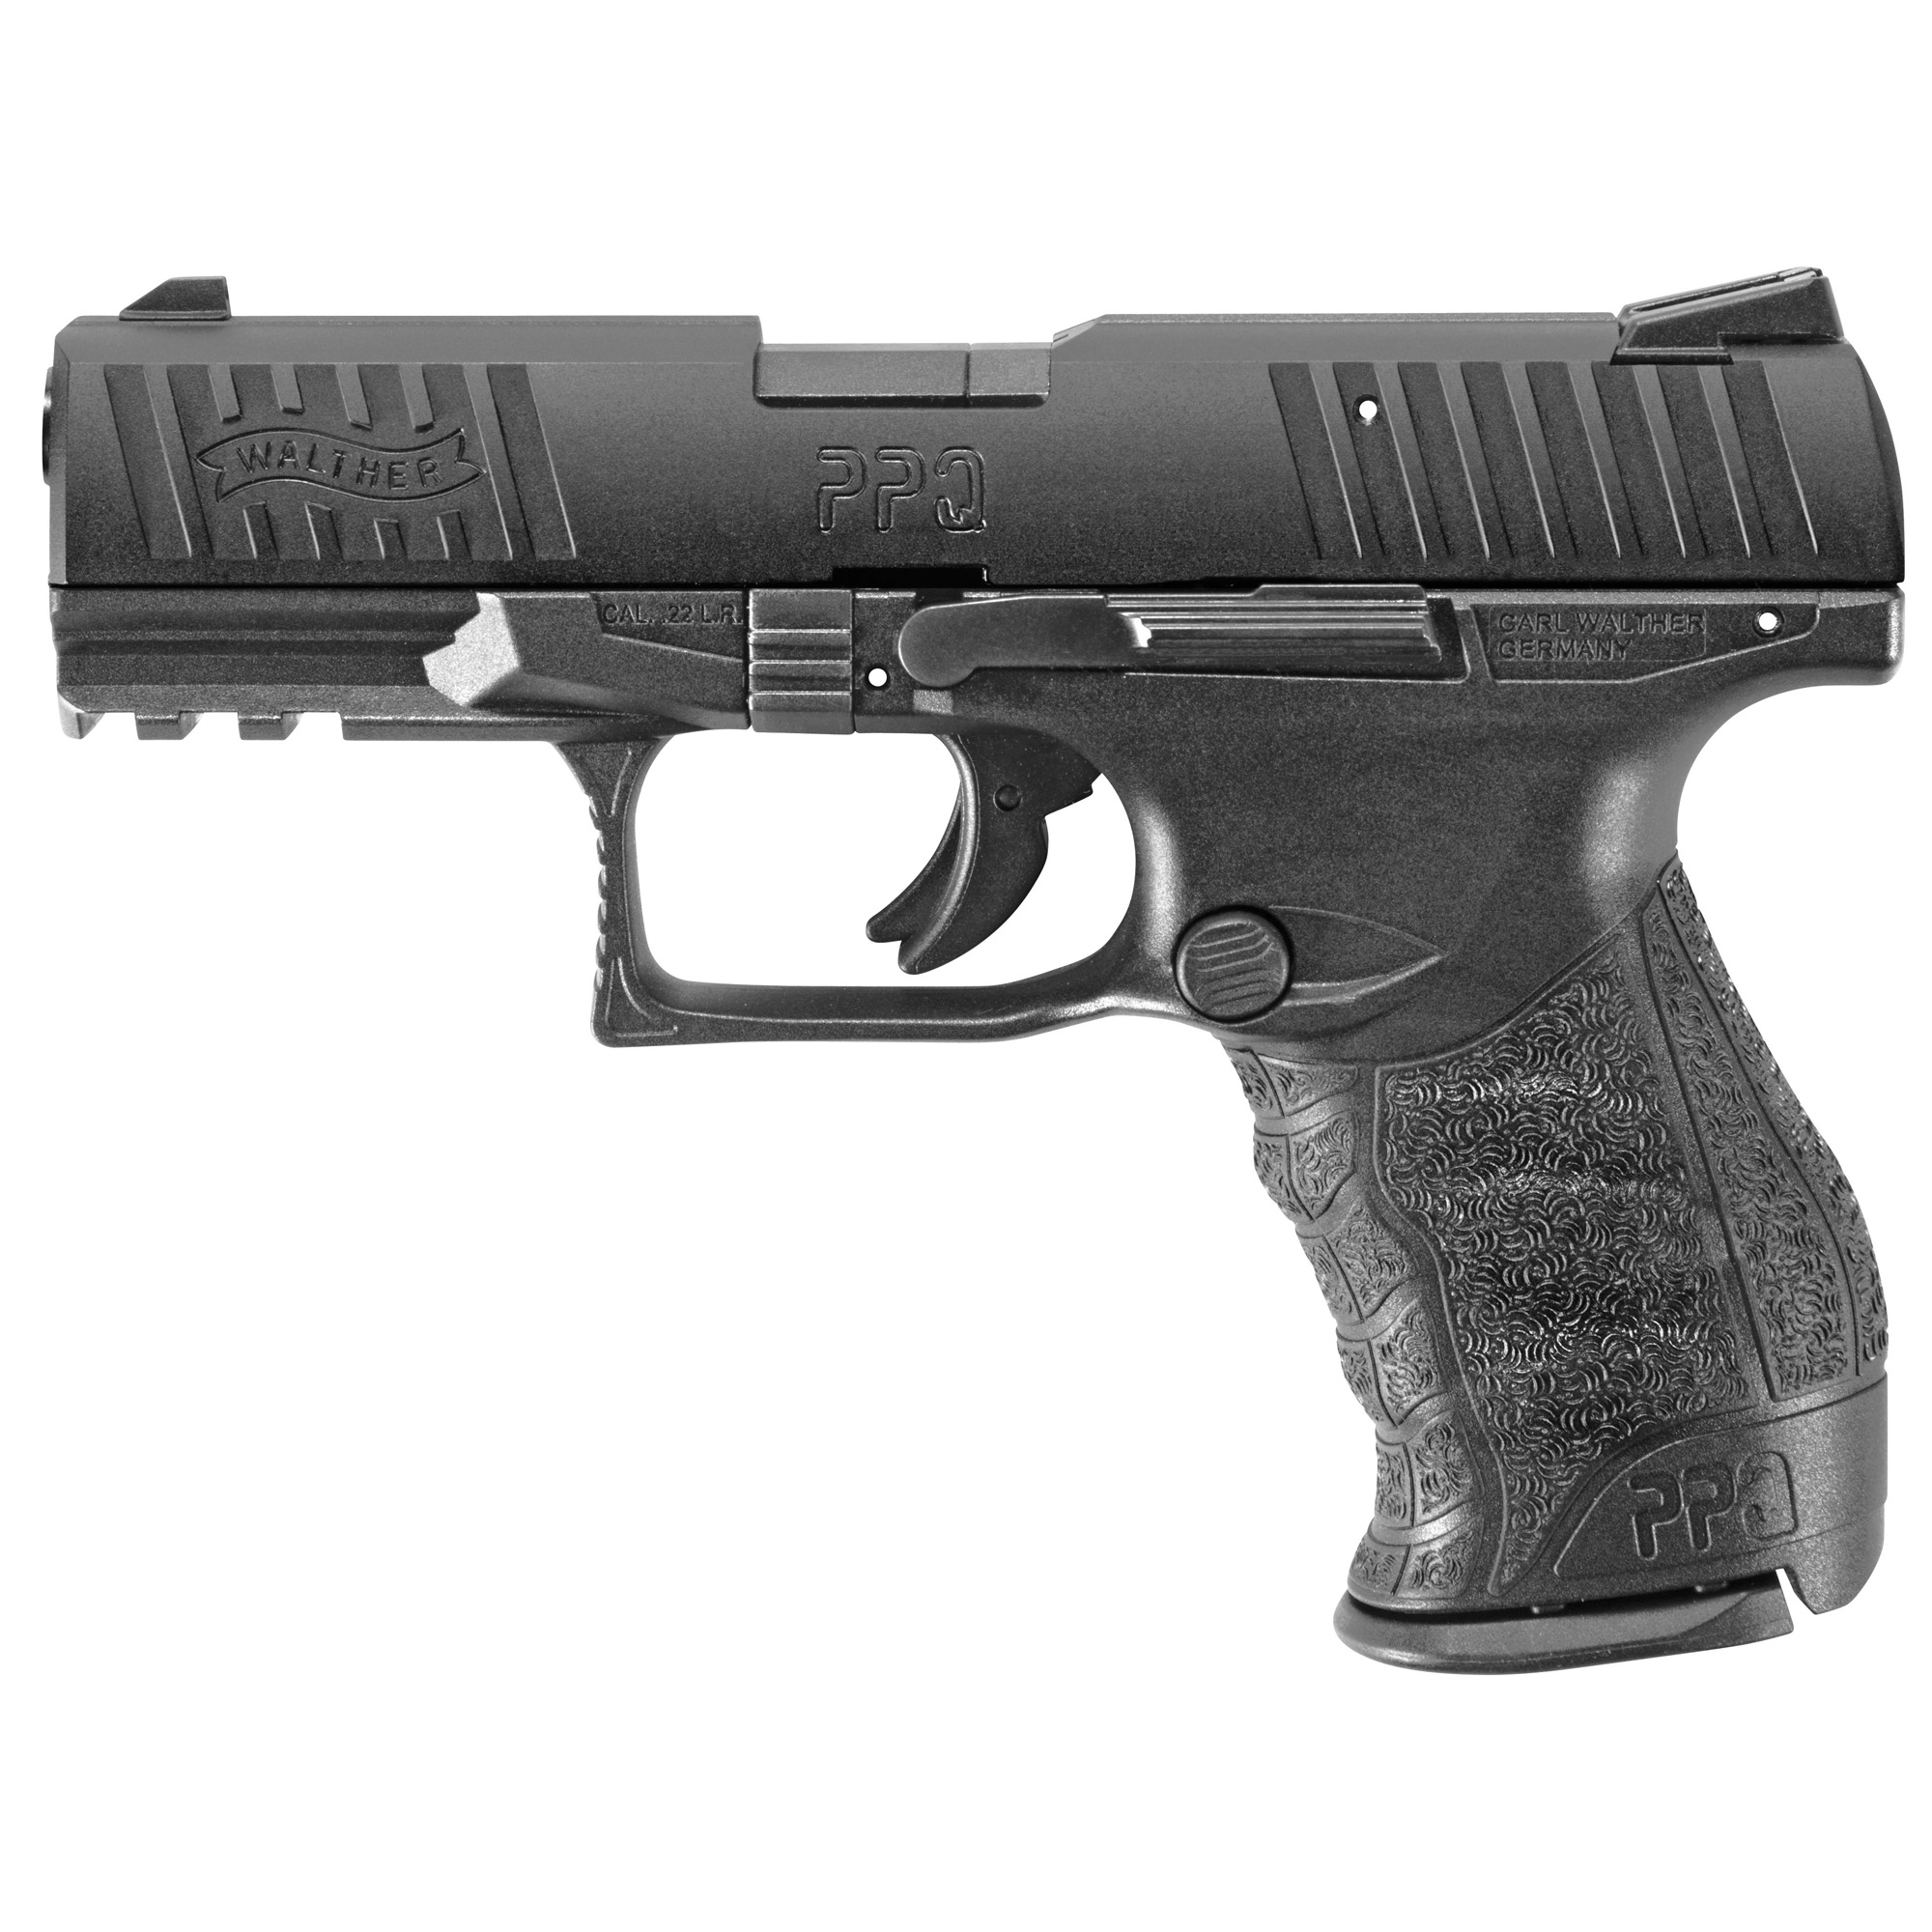 """The PPQ .22 is the best of both worlds. By combining smooth-shooting"""" ergonomically-advanced components of the PPQ with the fun and cost savings of .22 rimfire"""" you have the pleasure of shooting shot after shot both accurately and affordably. The sculpted grip meshes smoothly into the hand. The trigger is the finest ever on a polymer handgun. The styling is elegant and trim."""